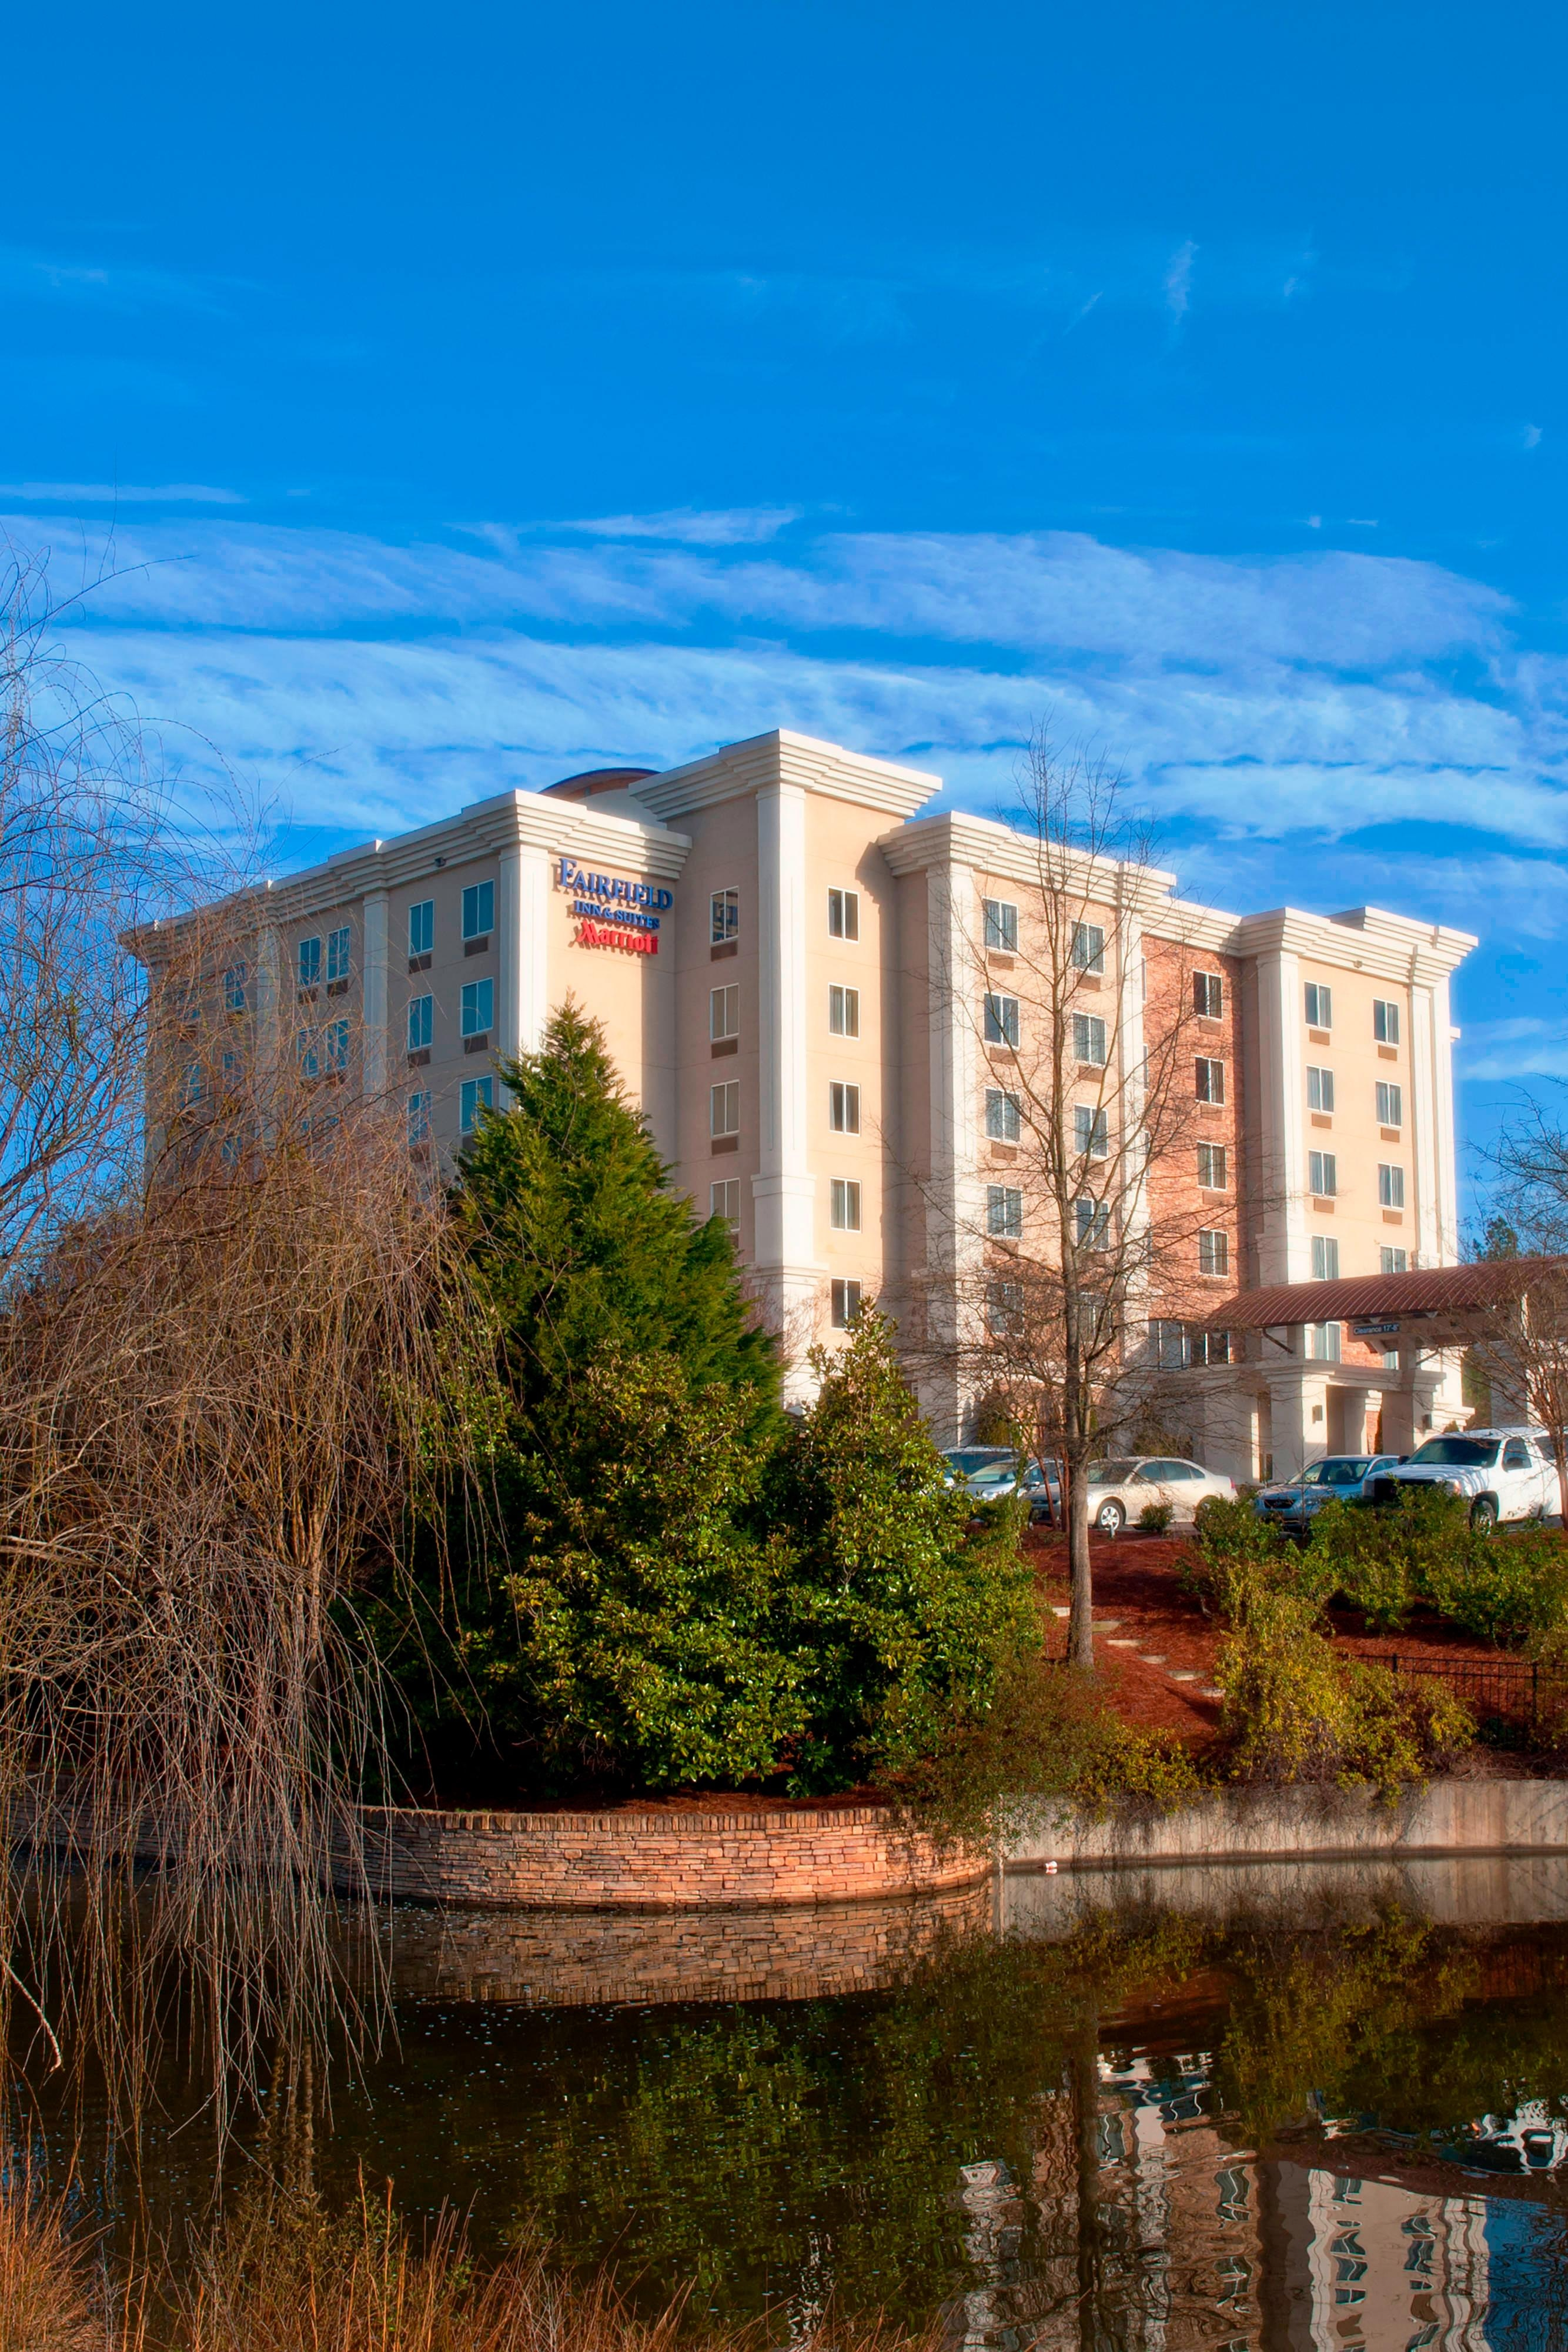 Hotels in Durham North Carolina